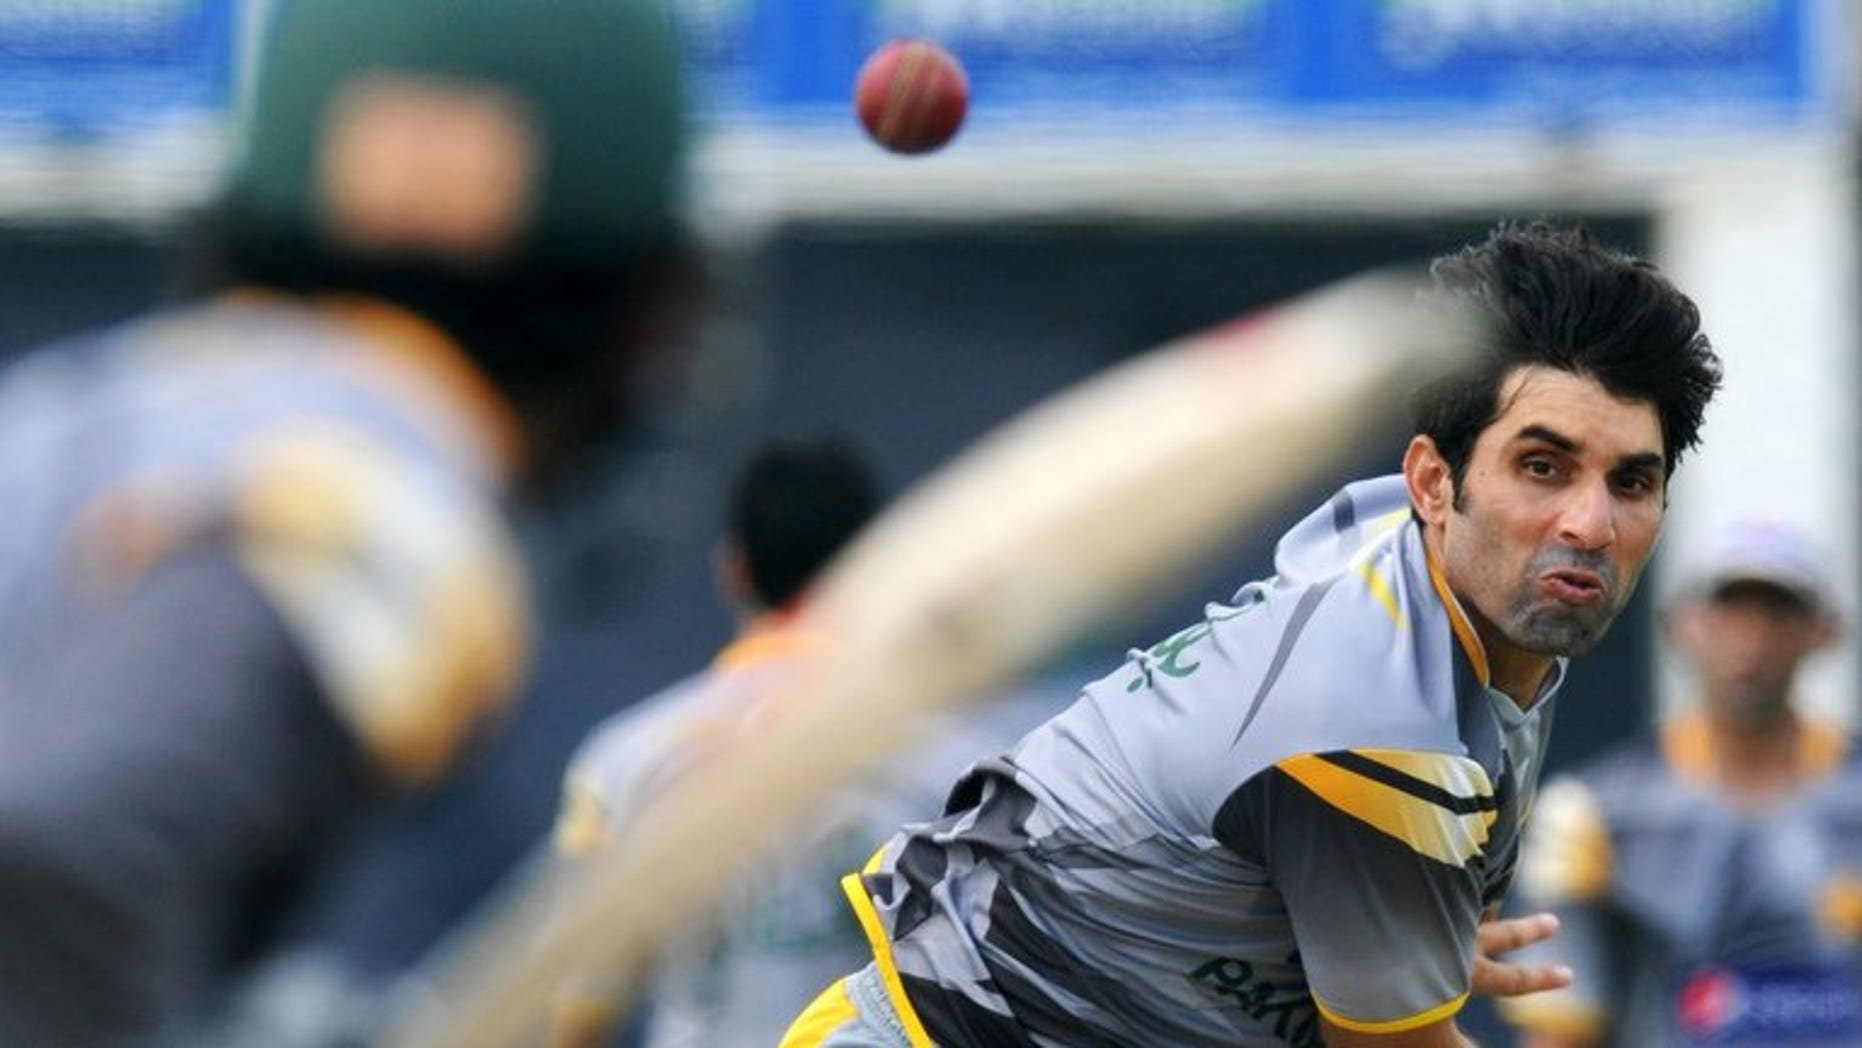 Pakistan cricketer Misbah ul-Haq delivers a ball during a practice session at the Galle International Stadium in Galle on June 21, 2012. Misbah urged his country's cricket chiefs Wednesday to revive plans for an IPL-style Twenty20 league to get his players sharp for international competition.